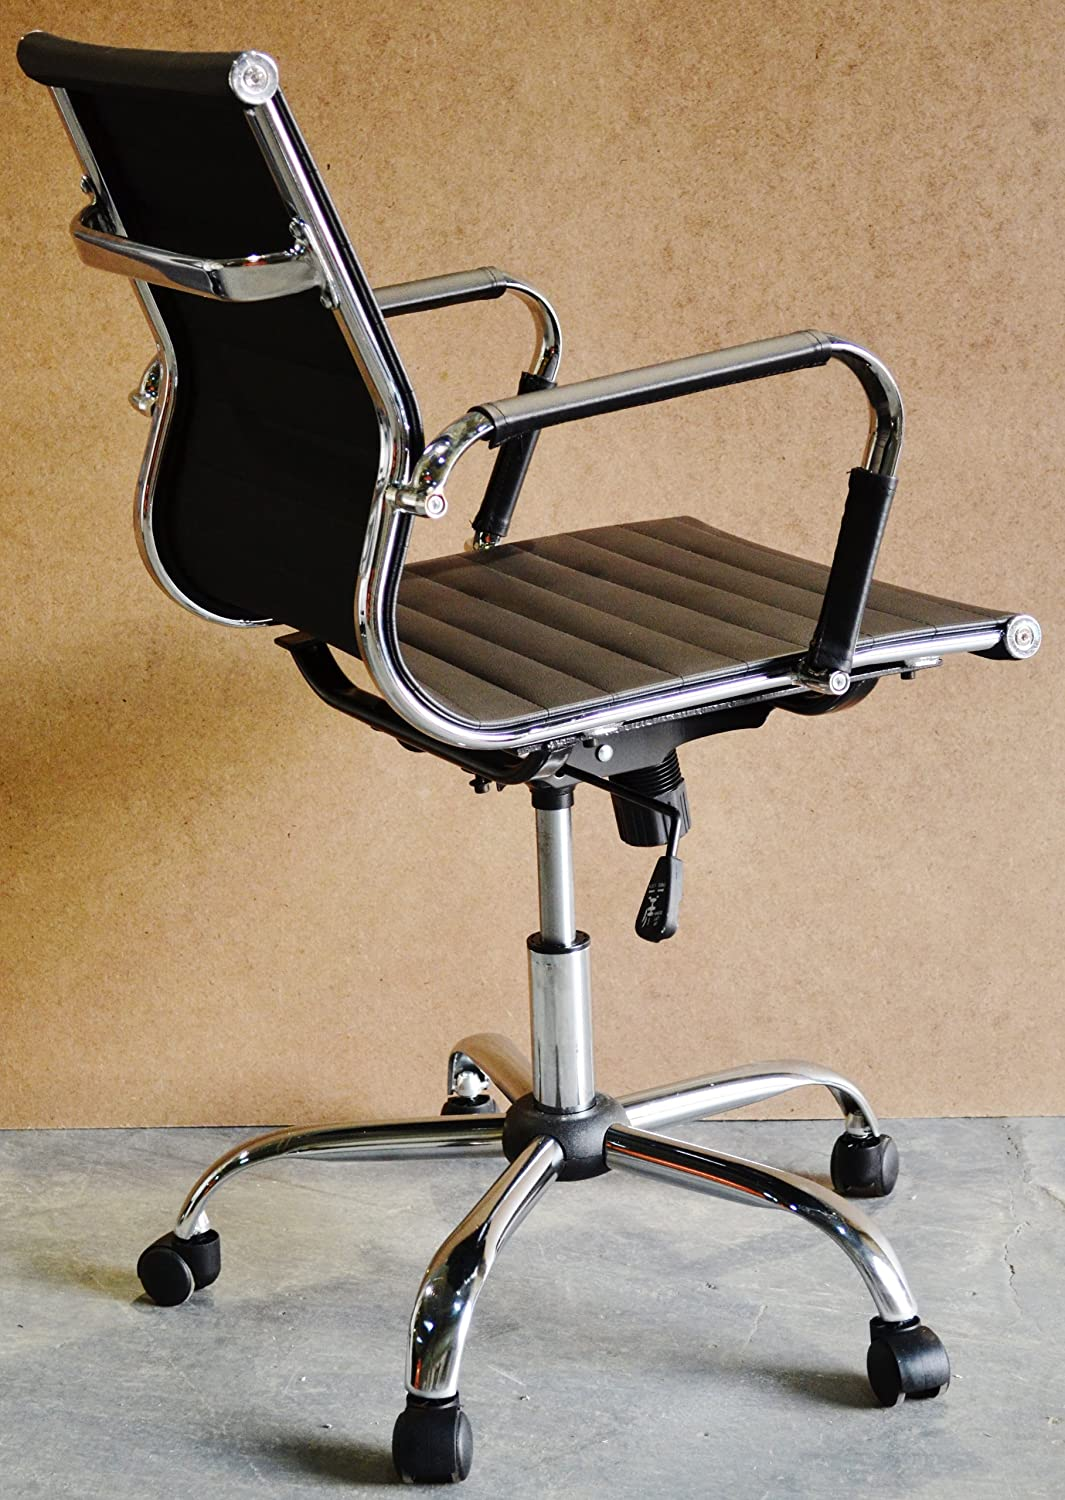 chair outlet. black designer computer desk contemporary conference boardroom reception charles meeting office chair - outlet: amazon.co.uk: kitchen \u0026 home outlet